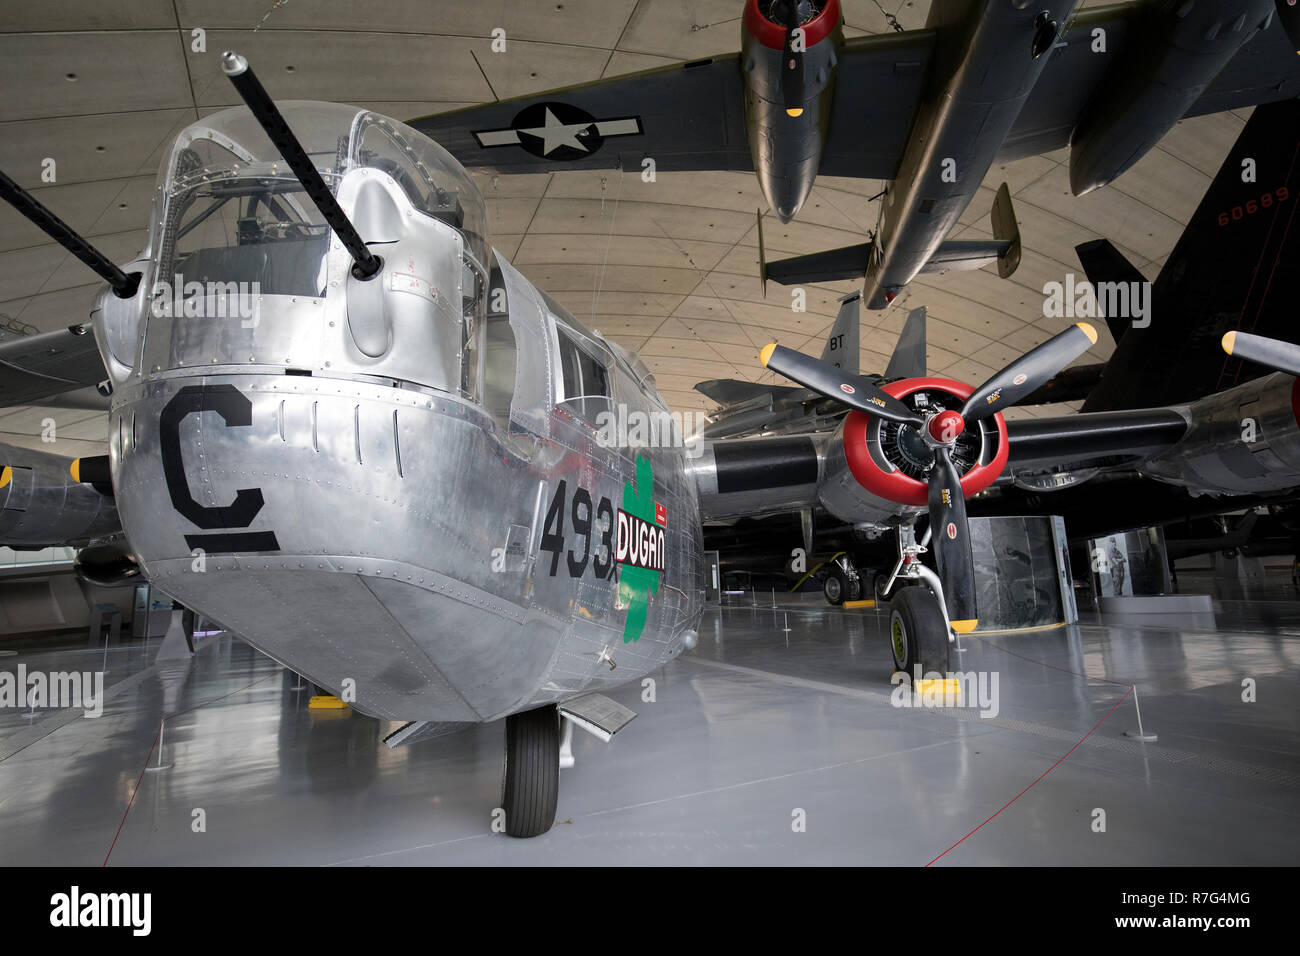 U.S.A.  B-24M Consolidated Liberator bomber at the American war museum,Duxford, Cambridgeshire,uk - Stock Image